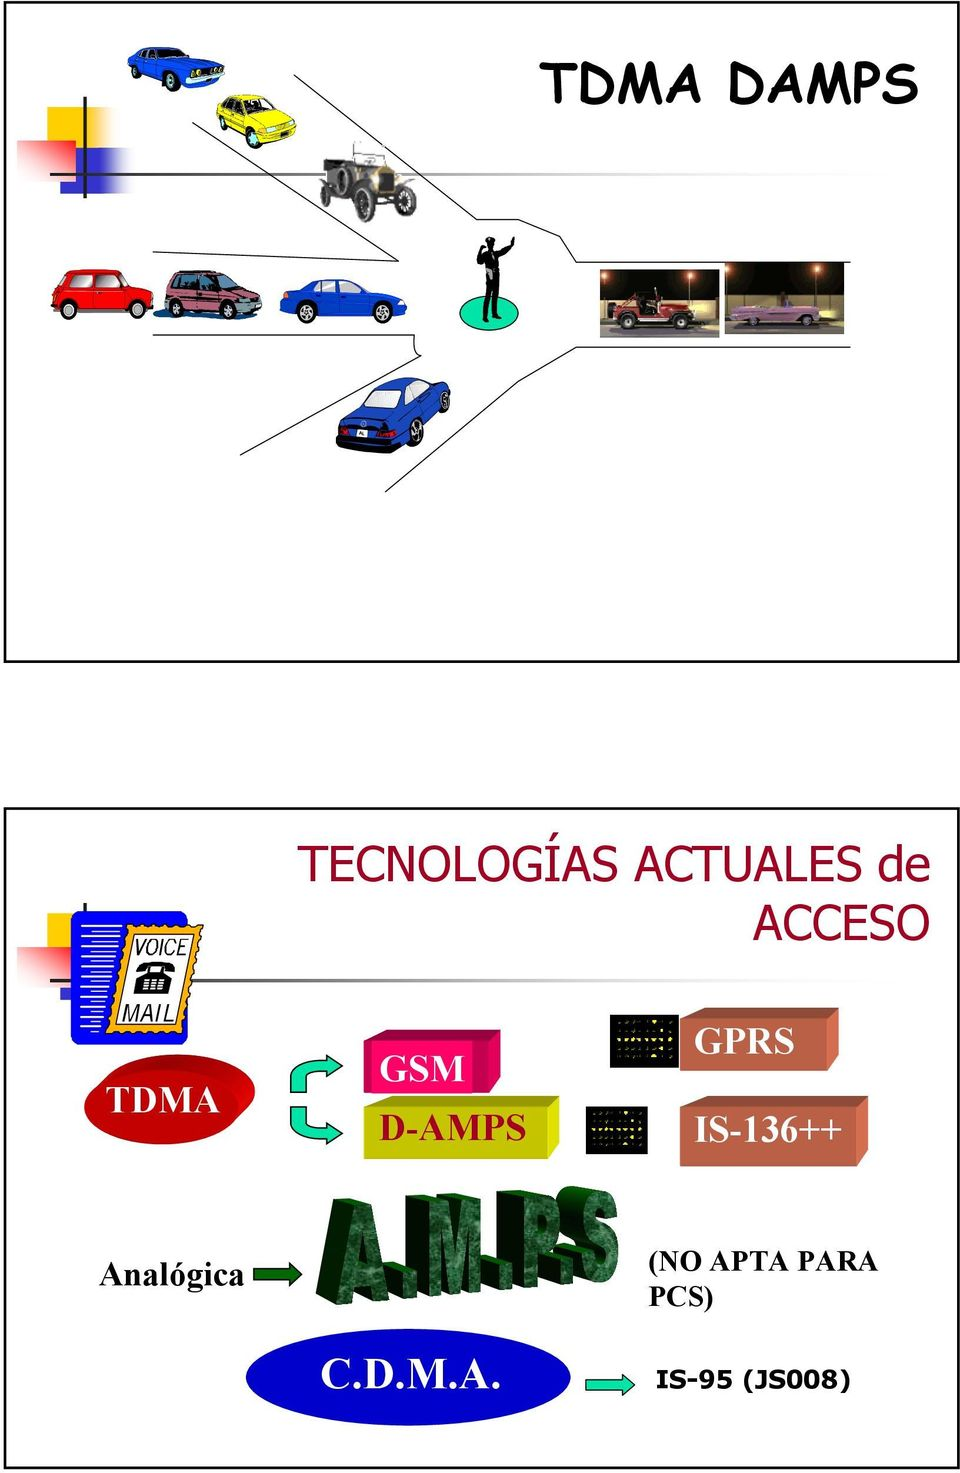 D-AMPS GPRS IS-136++ Analógica